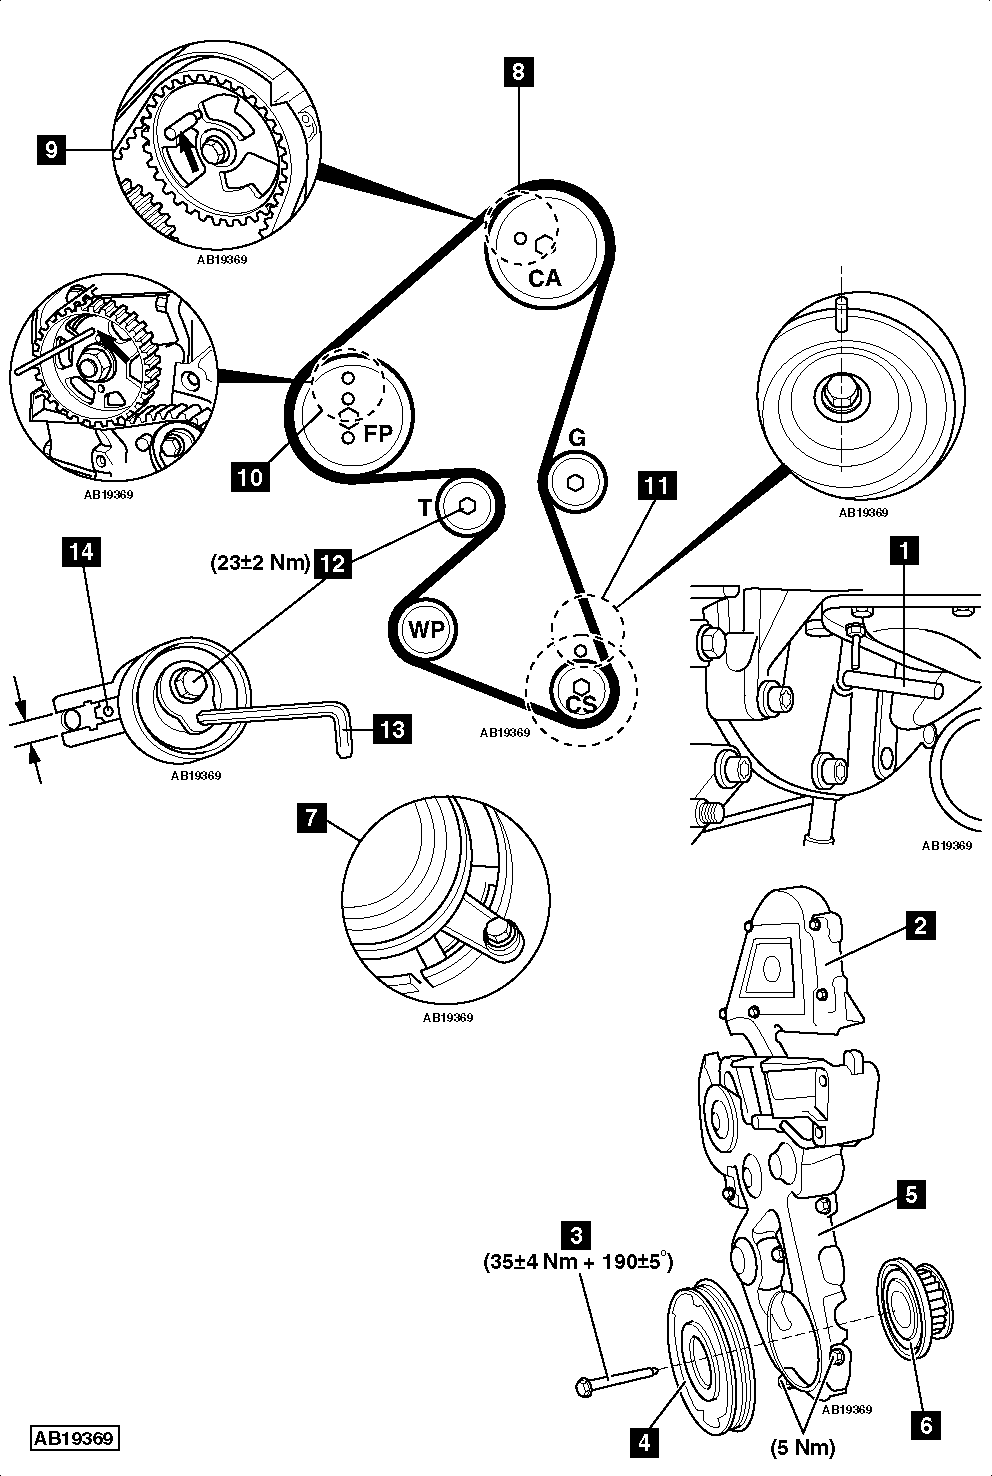 vauxhall corsa fuel pump wiring diagram with Mini Cooper Power Steering Wiring Diagram on Vauxhall Corsa 1 2 Wiring Diagram besides 4tiy1 Vauxhall Meriva Vauxhall Meriva 1 6 Petrol Suddenly Cuts moreover Astra 08 Fuse Box additionally Astra 55 Fuse Box besides Fuse Box Location In A Ford Focus Youtube 2013 Penger.